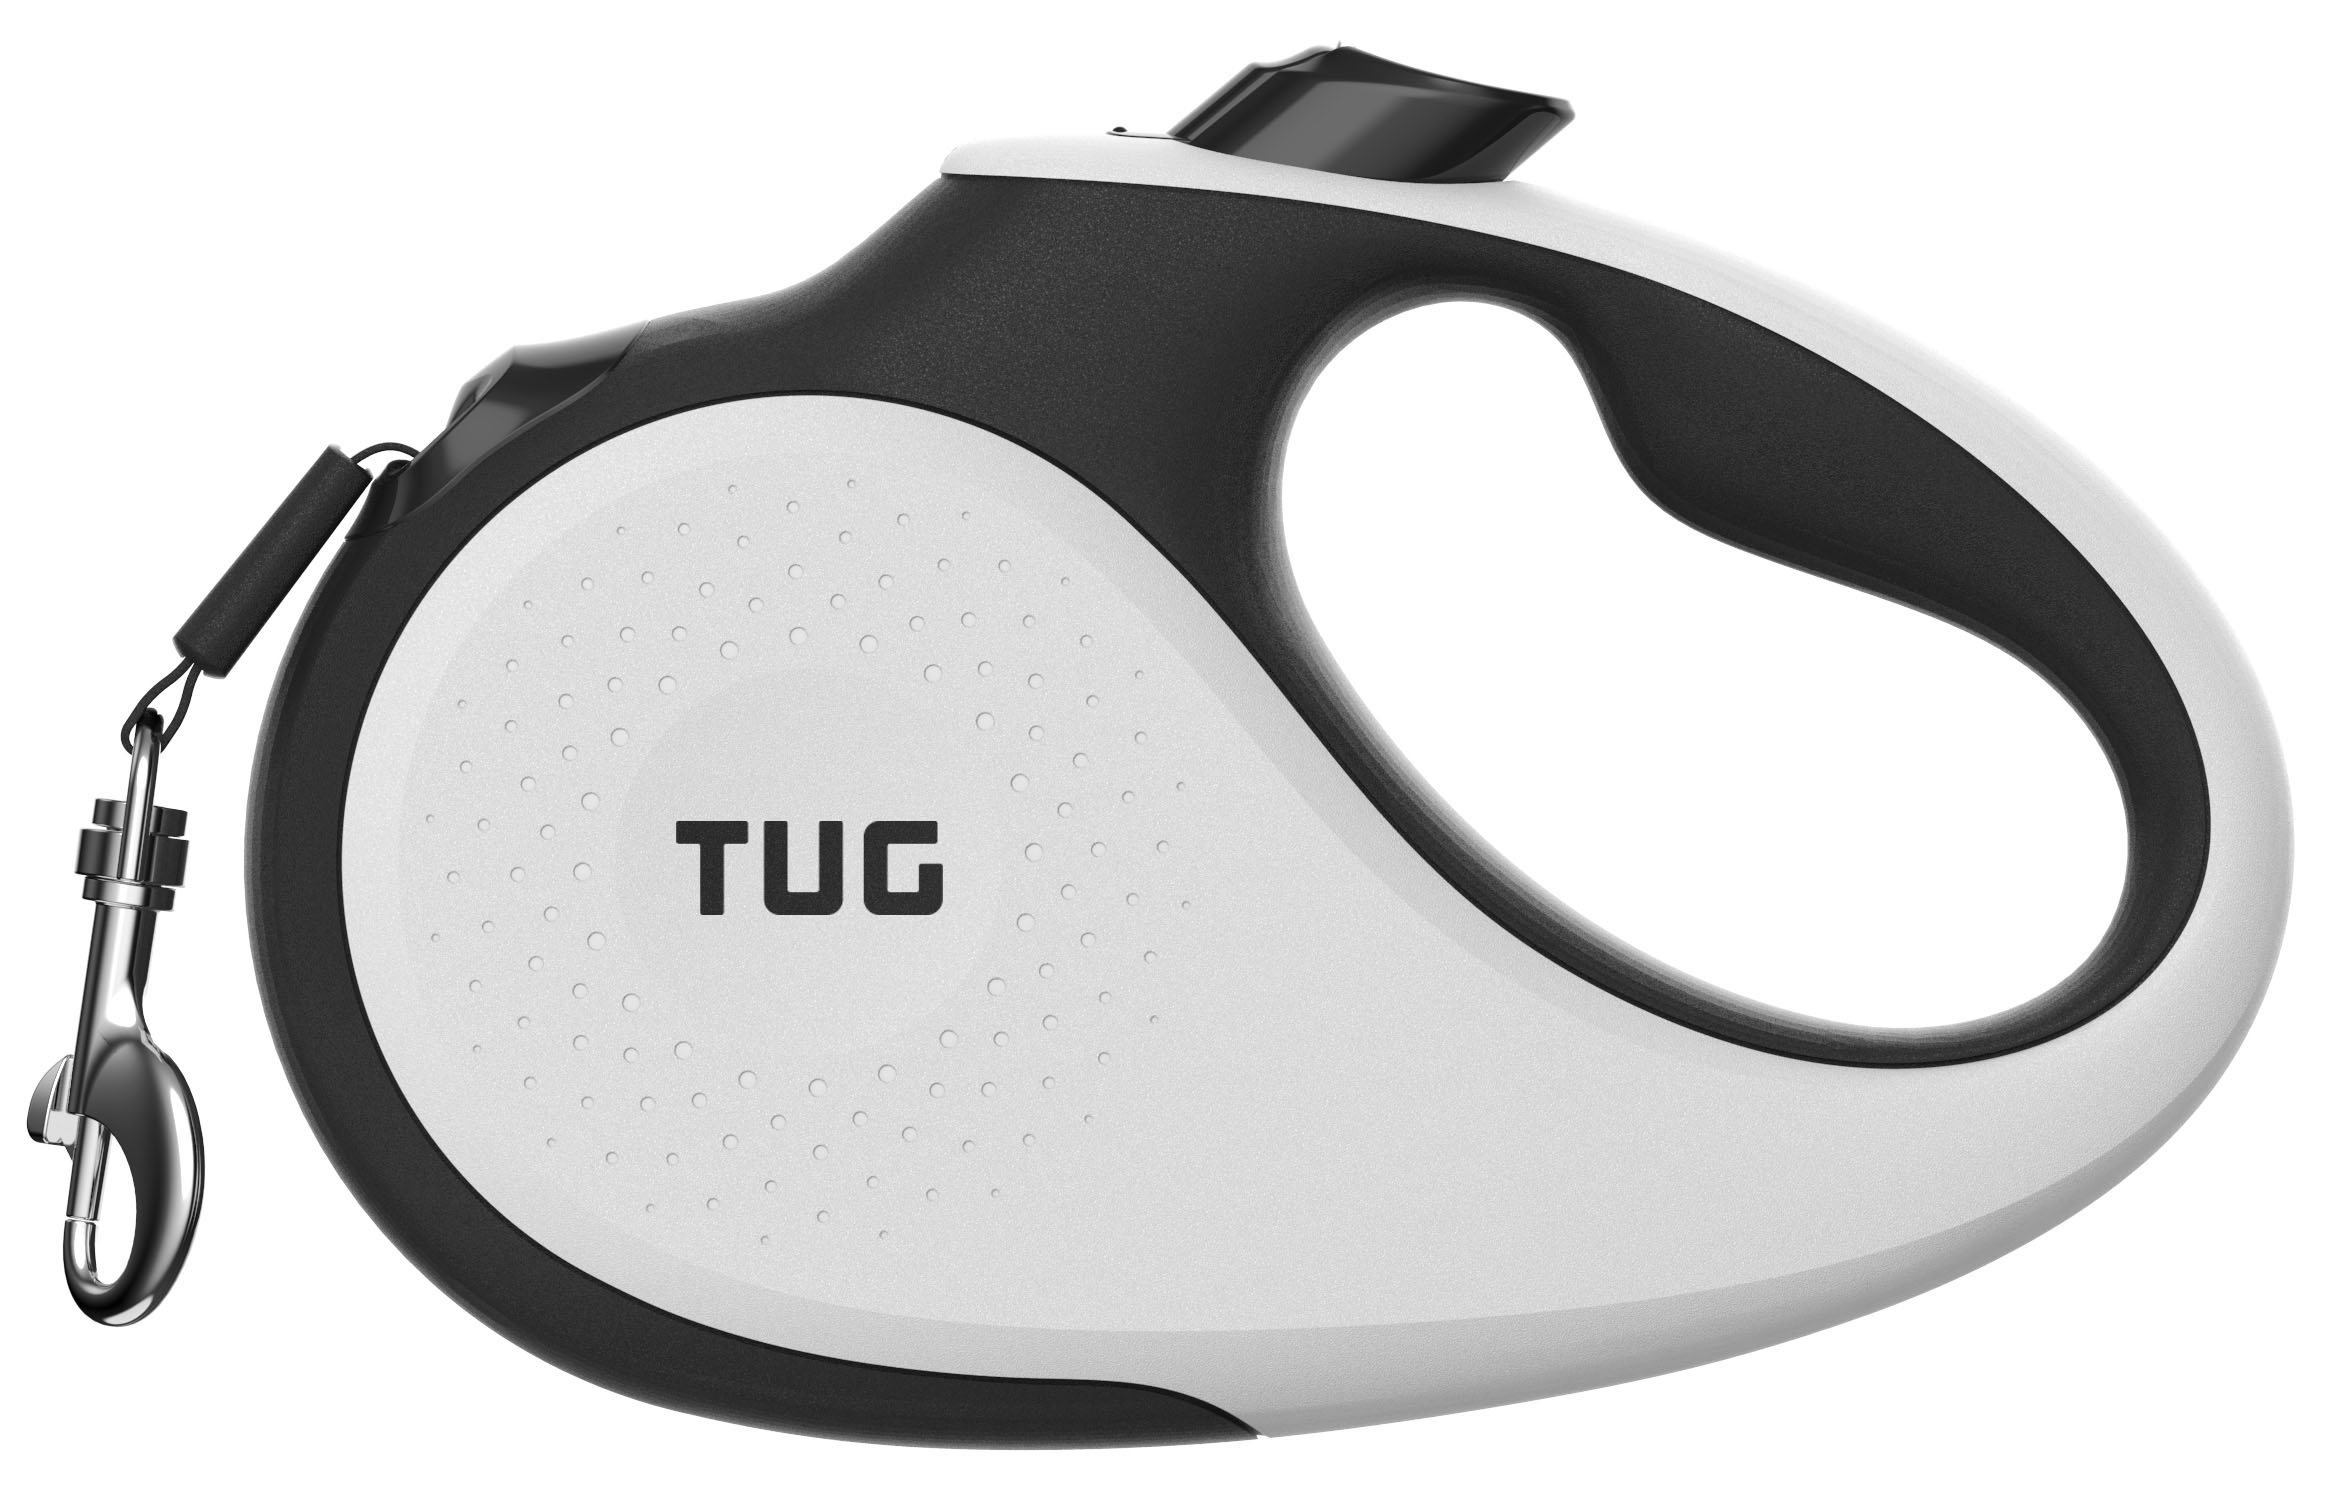 TUG Patented 360° Tangle-Free, Heavy Duty Retractable Dog Leash for Up to 110 lb Dogs; 16 ft Strong Nylon Tape/Ribbon; One-Handed Brake, Pause, Lock ... by TUG